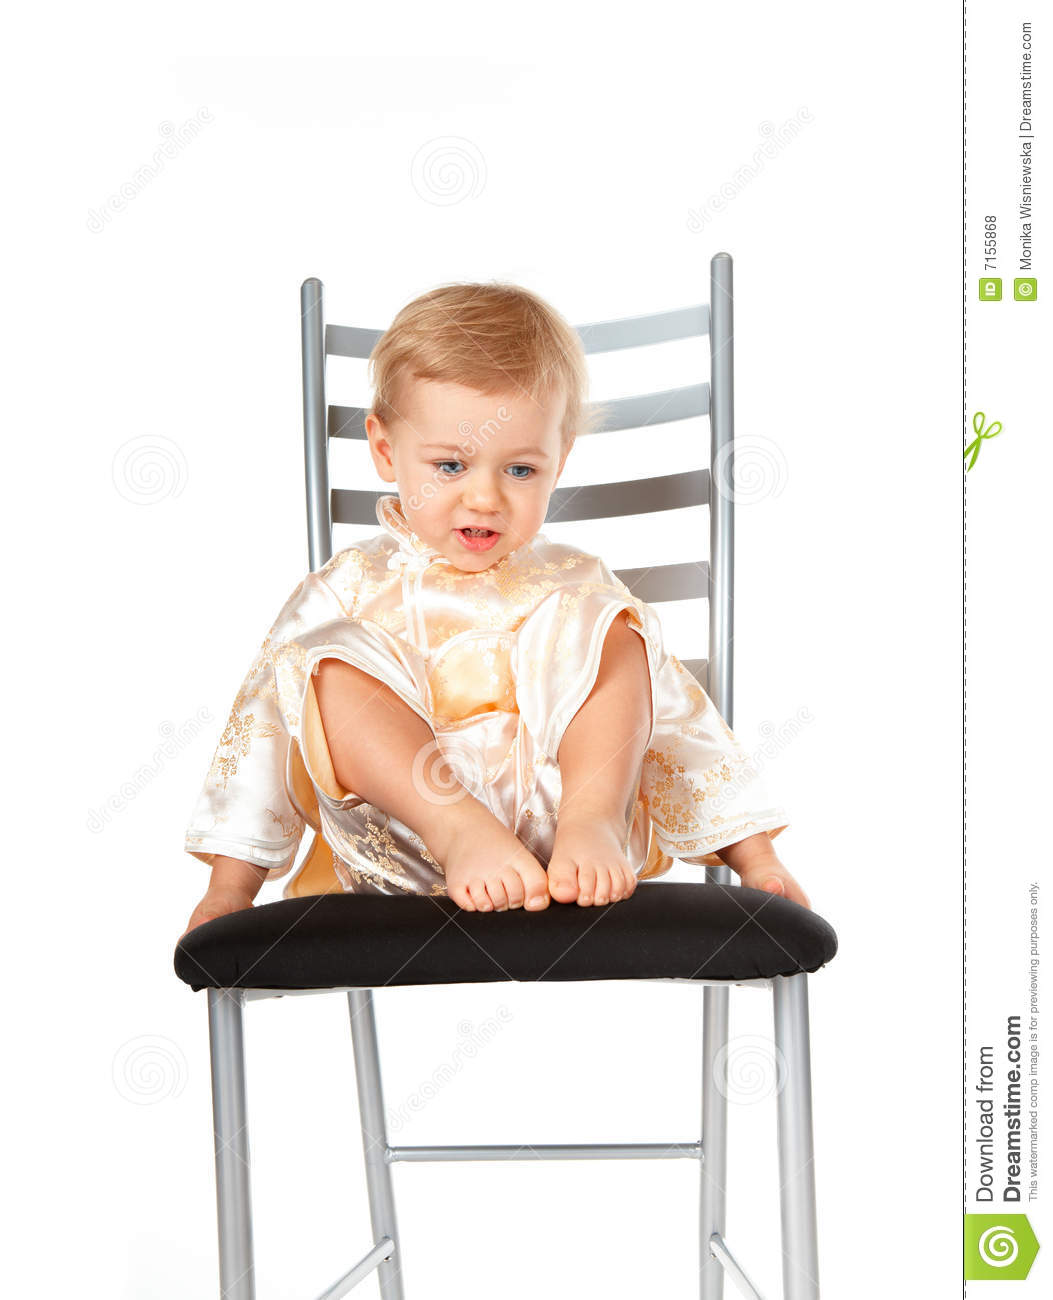 baby girl chair child s desk uk adorable sitting on a royalty free stock